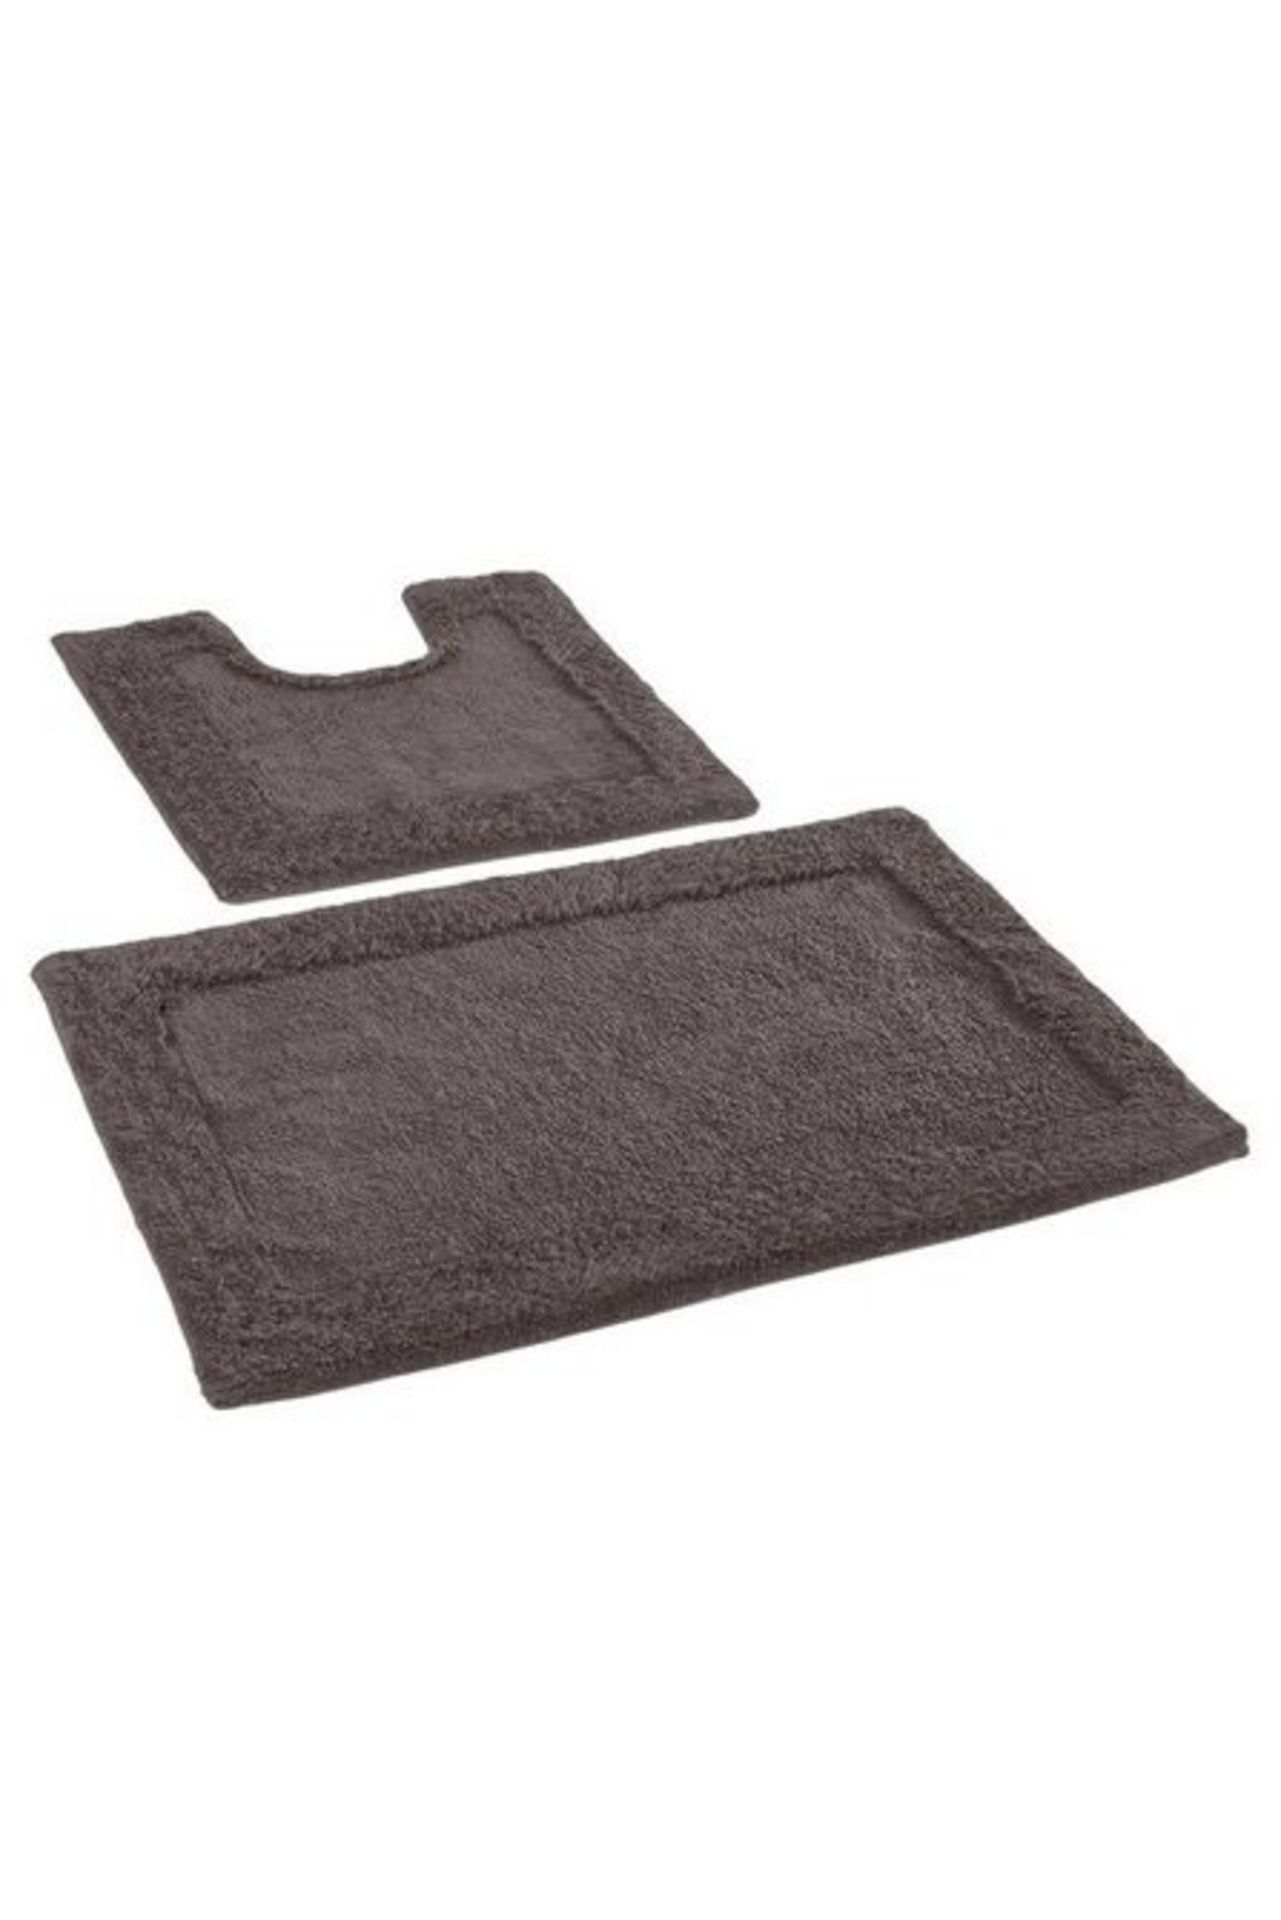 Lot 144 - 1 AS NEW BAGGED KINGSLEY HOME BATH MAT SET IN SLATE (PUBLIC VIEWING AVAILABLE)